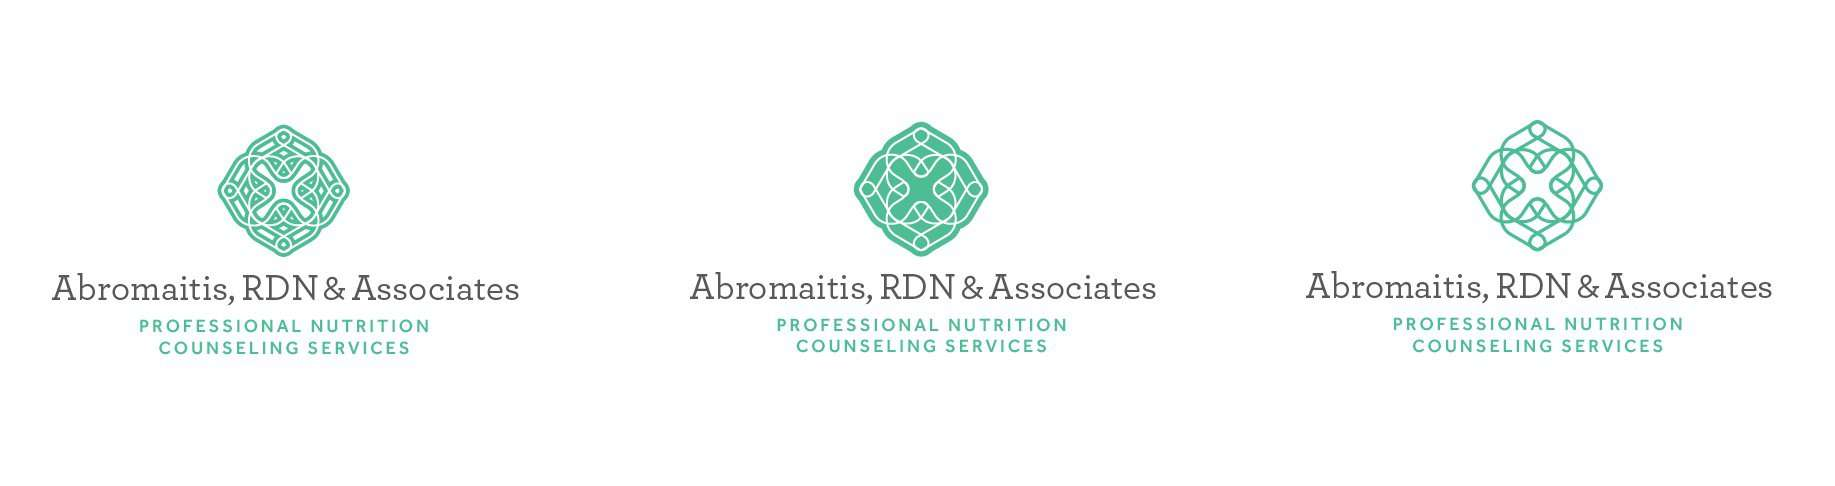 professional counseling Nhs helps consumers to prepare, invest and retain the dream of home ownership our goal is to ensure successful, sustainable home ownership for people of all income.